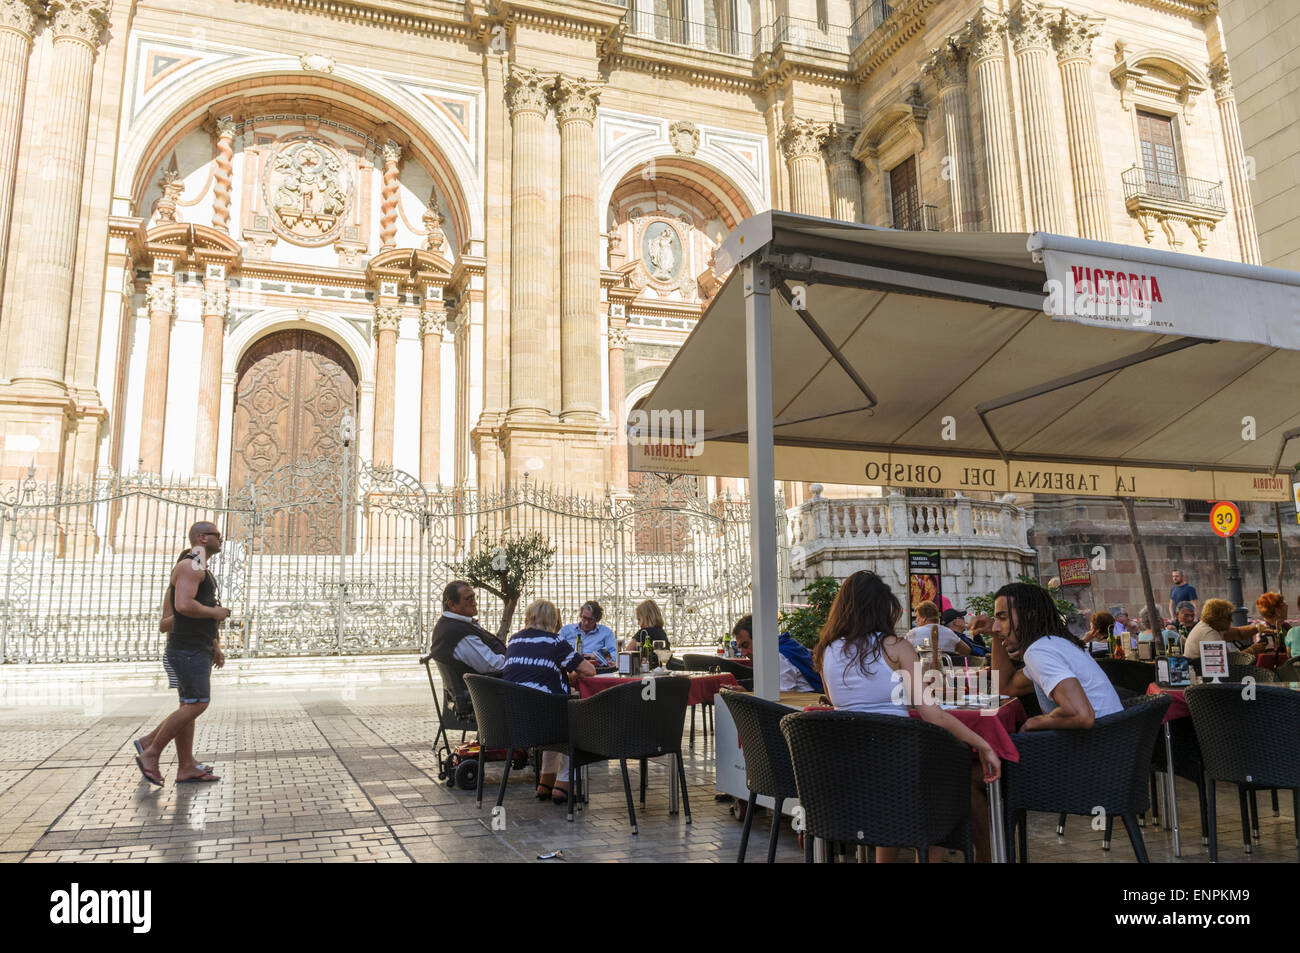 Malaga, Spain. People sitting at a terrace by the Cathedral on Bishop Square. - Stock Image